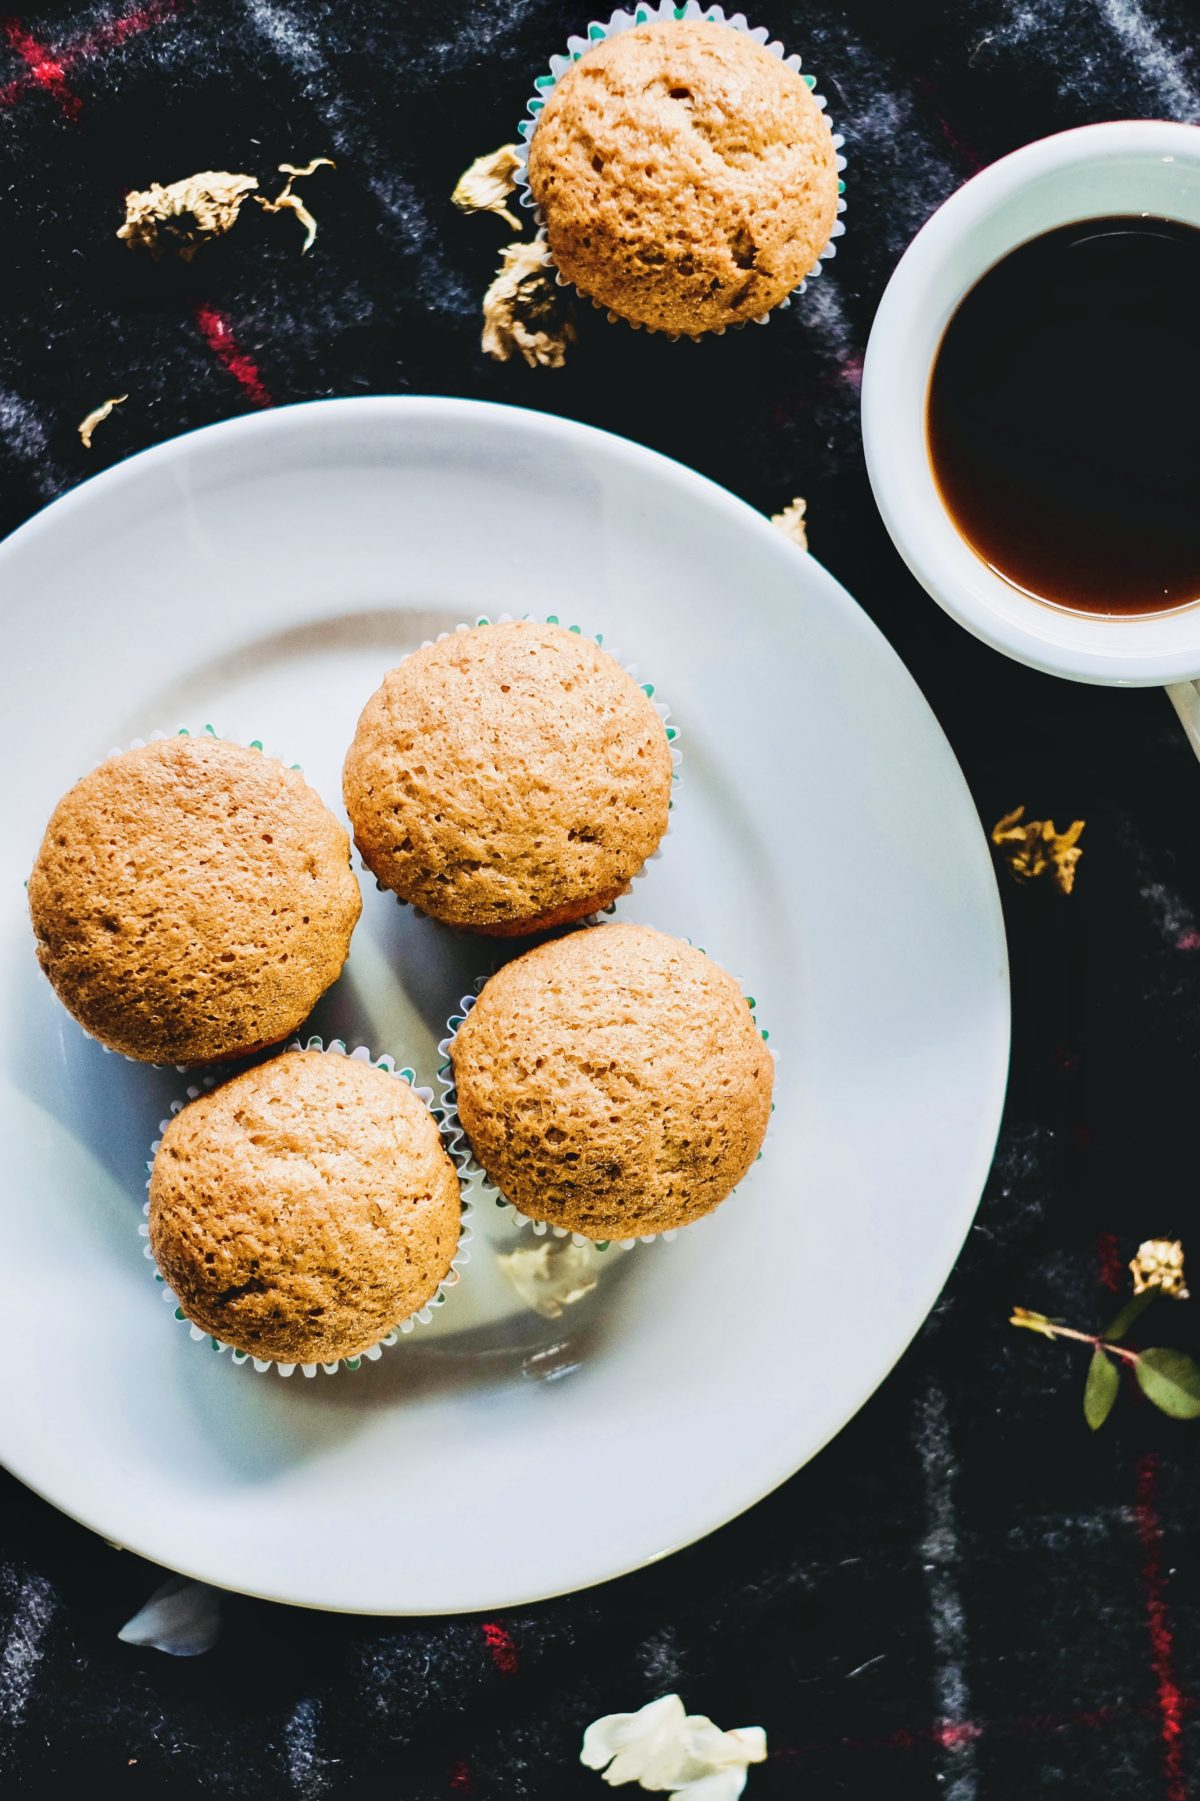 4 muffins on a white plate with cup of coffee